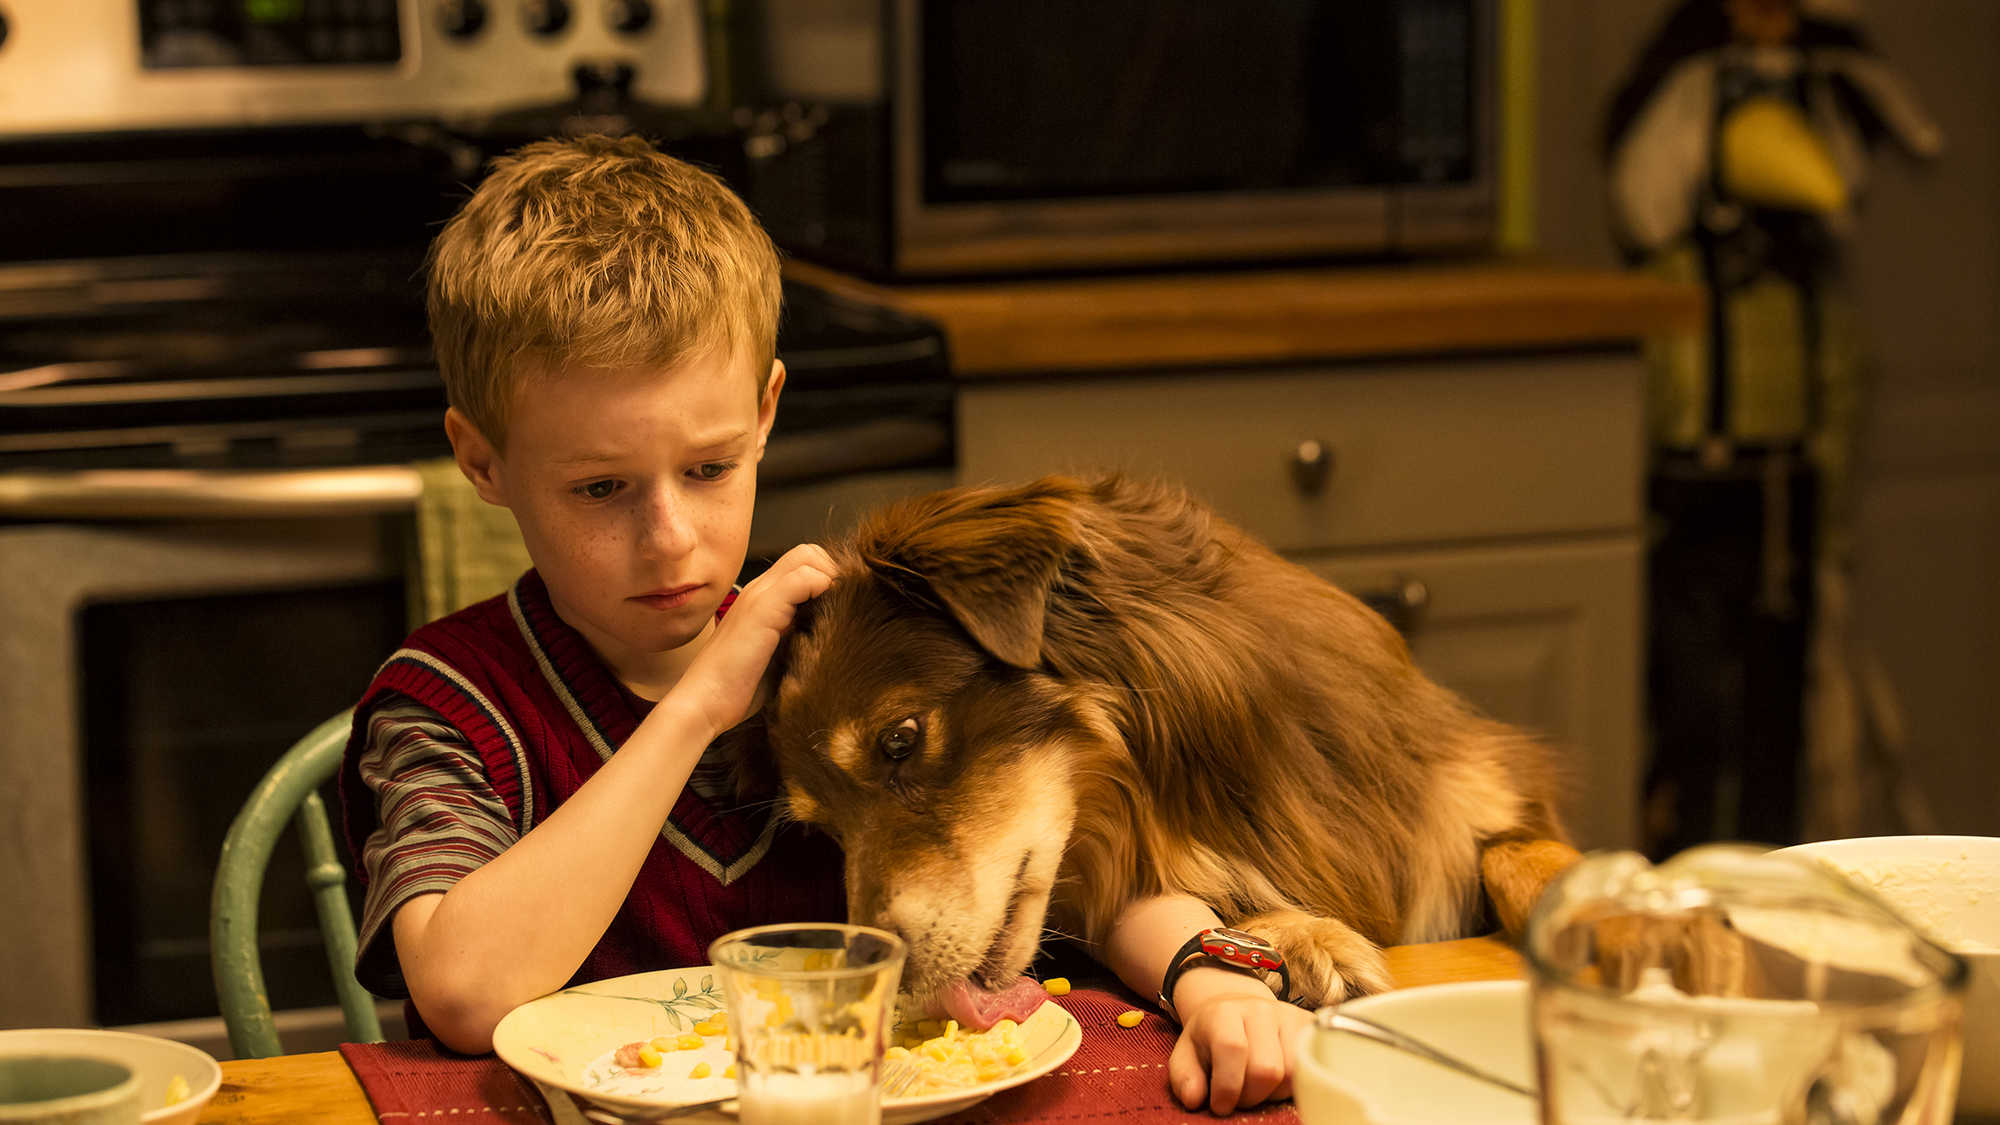 The Young and Prodigious T.S. Spivet 3D (image 16)